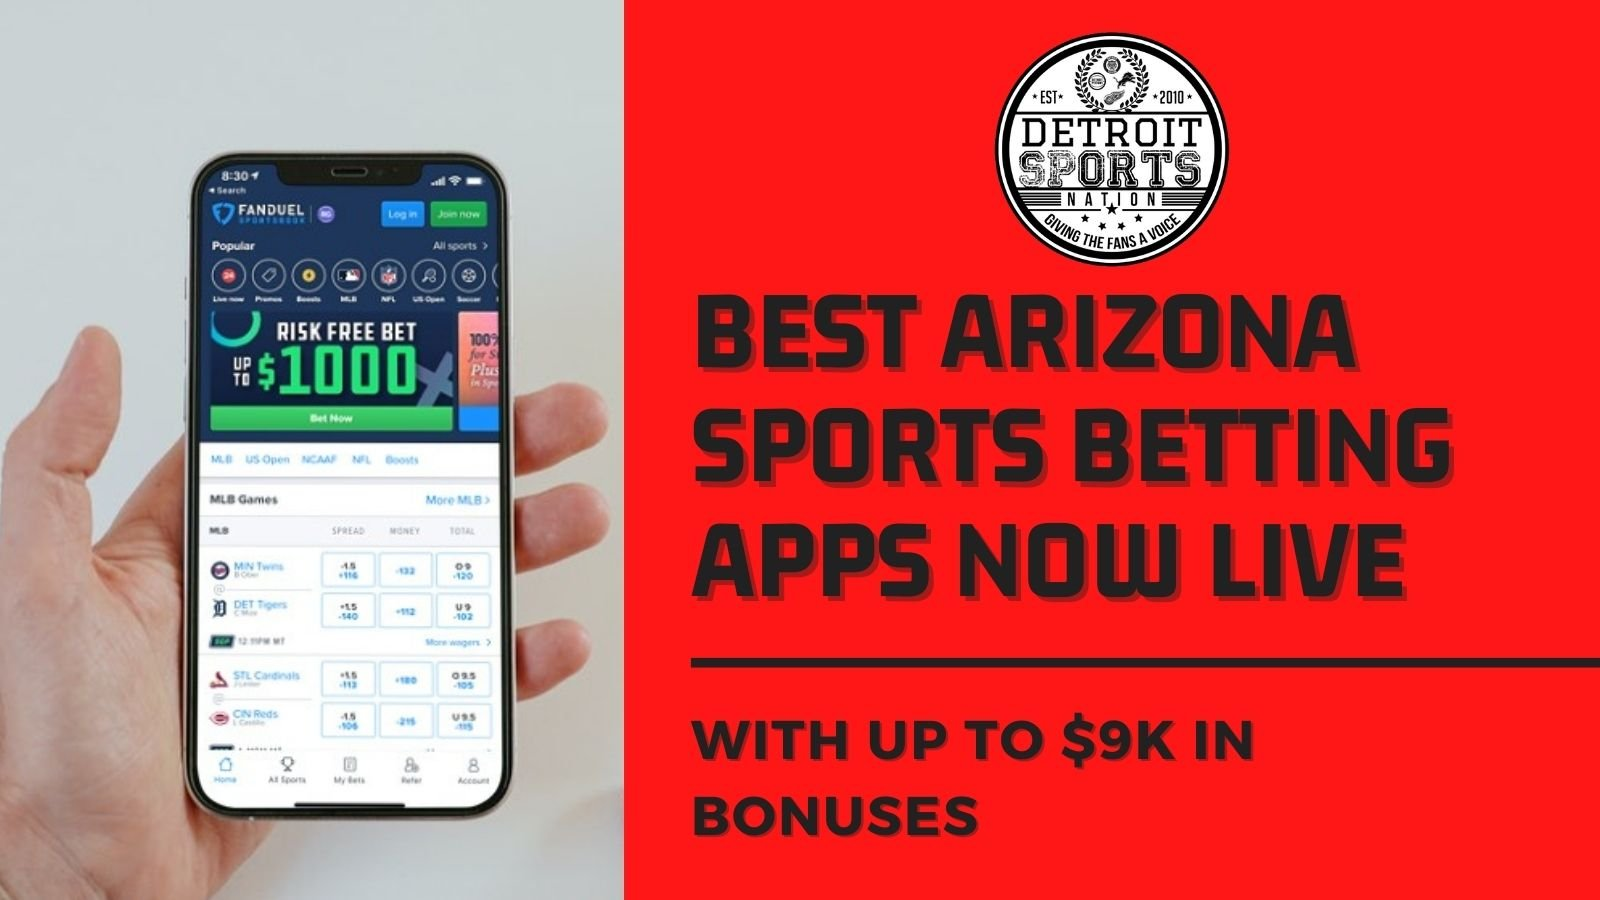 5 Best Arizona Betting Apps You Can Download Now